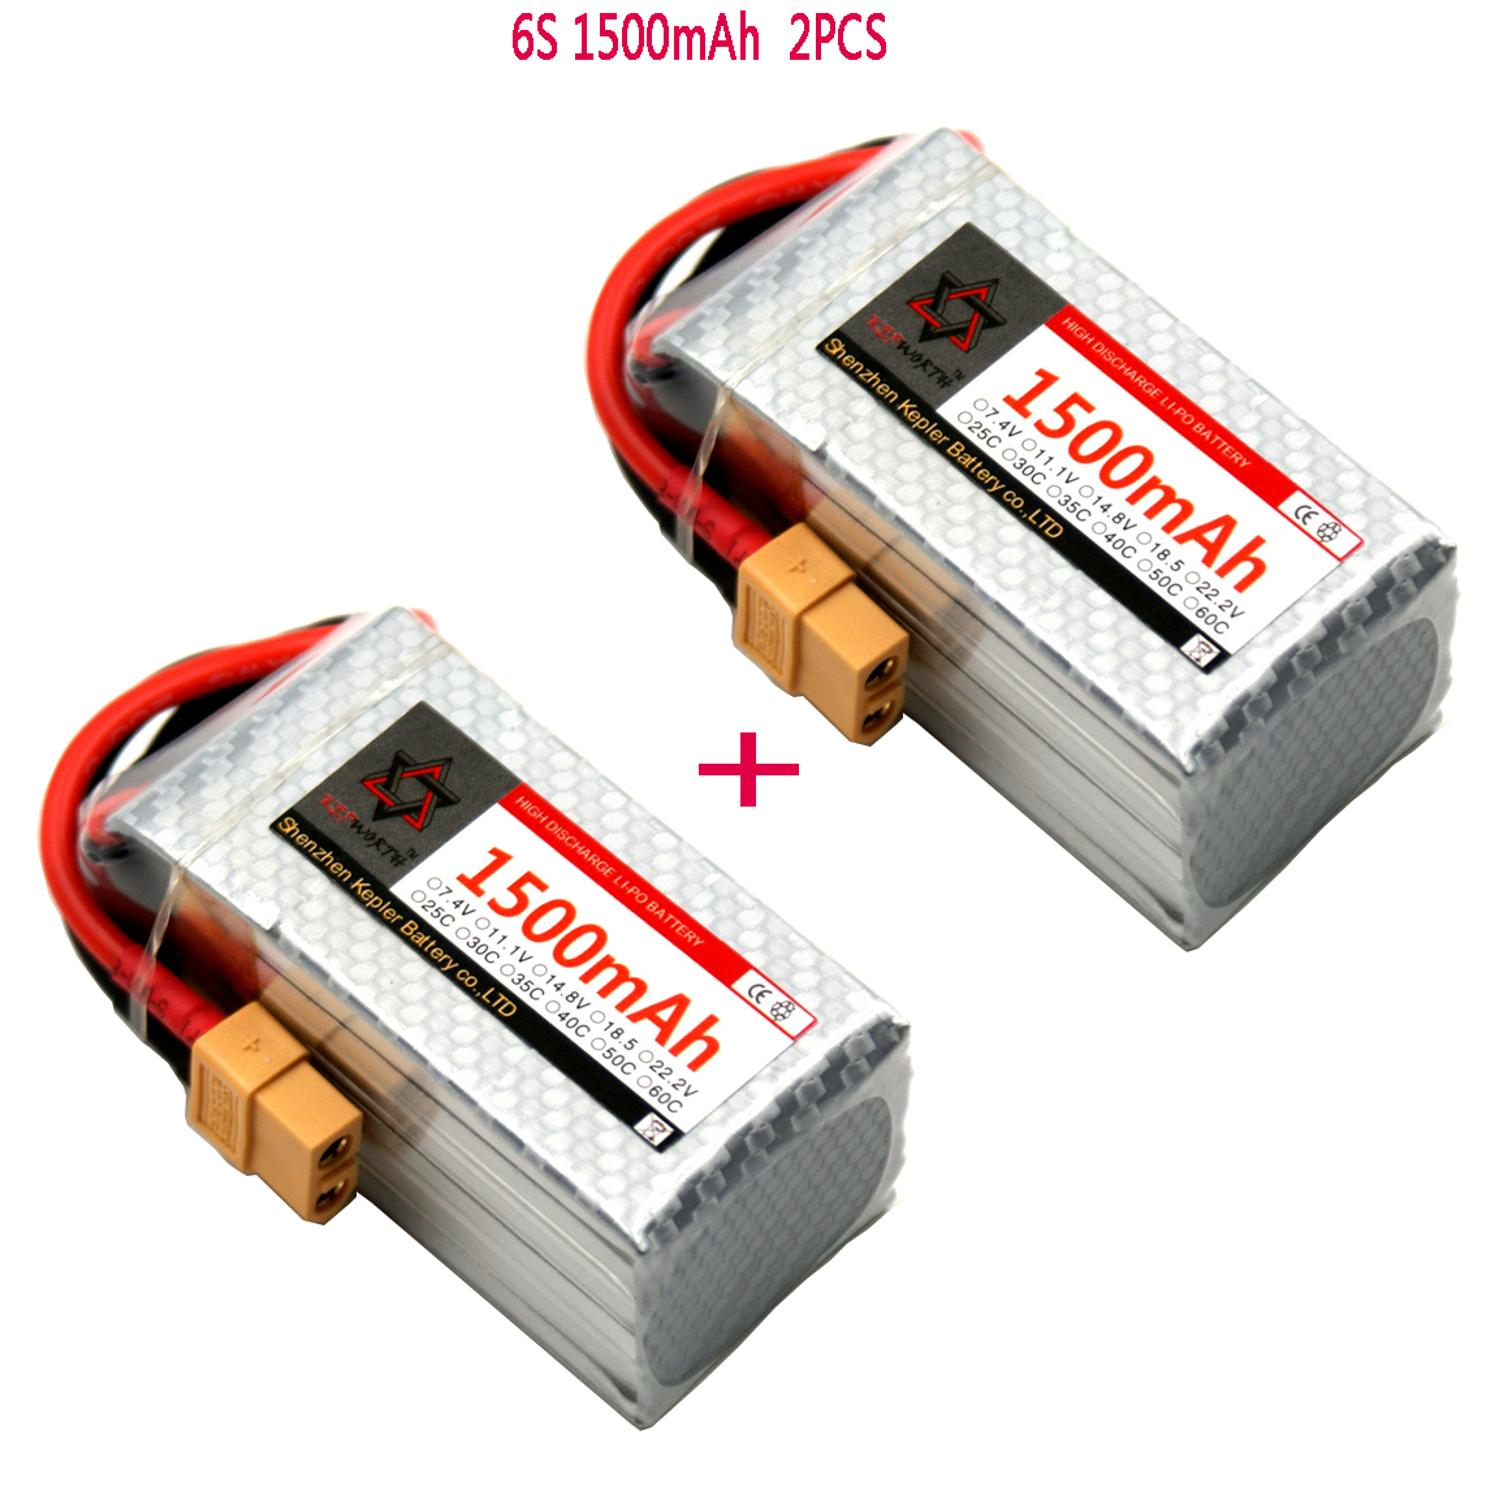 RC <font><b>Lipo</b></font> Battery 22.2V <font><b>6s</b></font> 900 1200 <font><b>1500mAh</b></font> Lithium Ion Polymer Li-po Battery For Car Plane Boat Truck Tank Drone Helicopter image